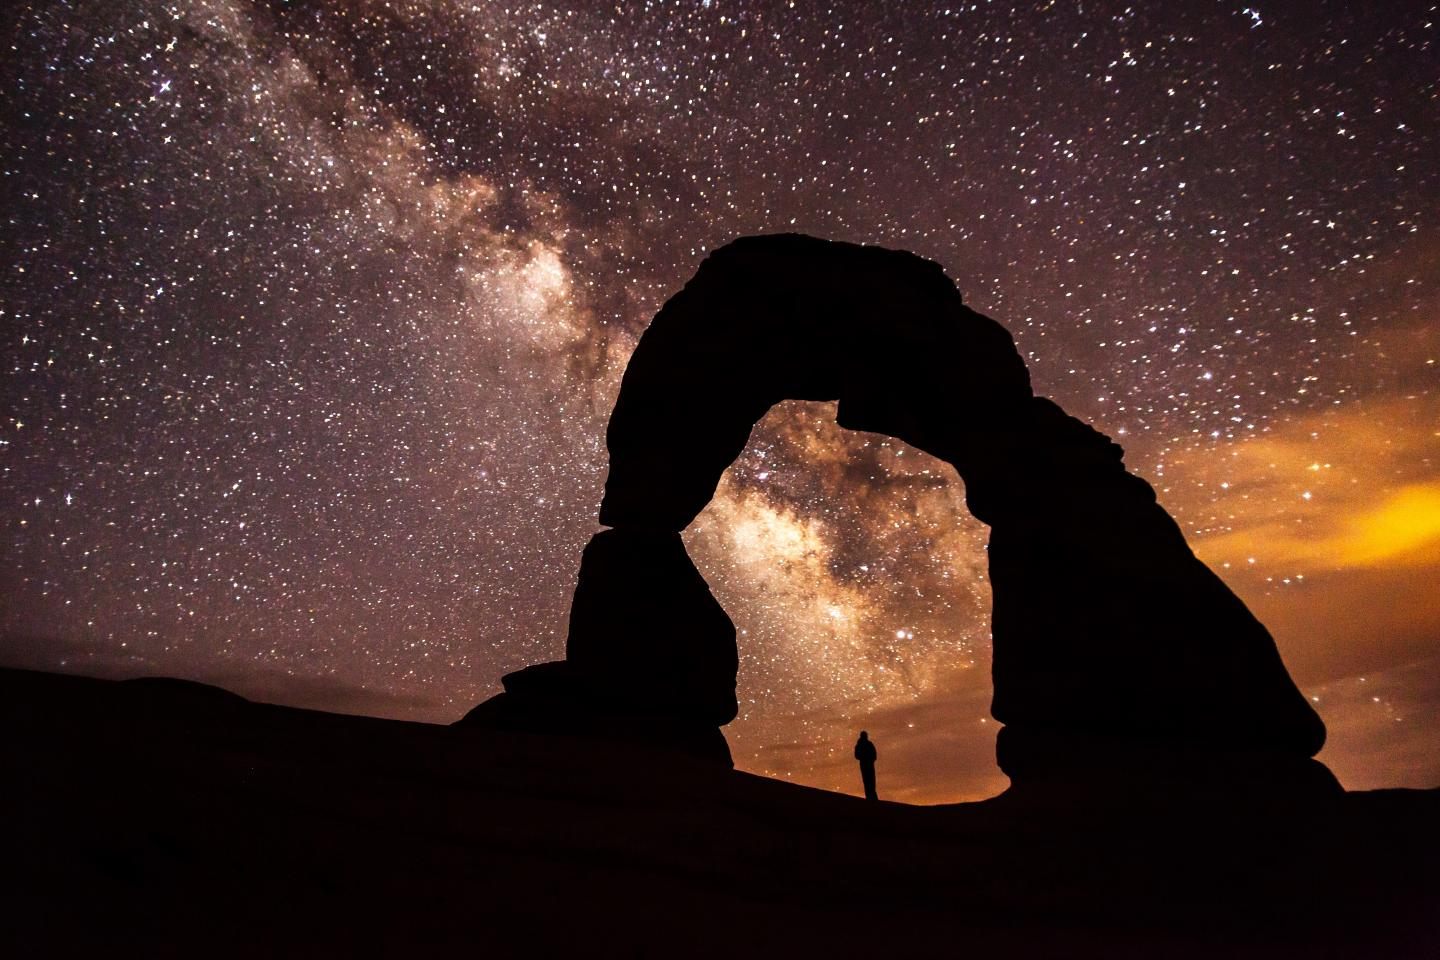 The Night Sky at Delicate Arches National Park